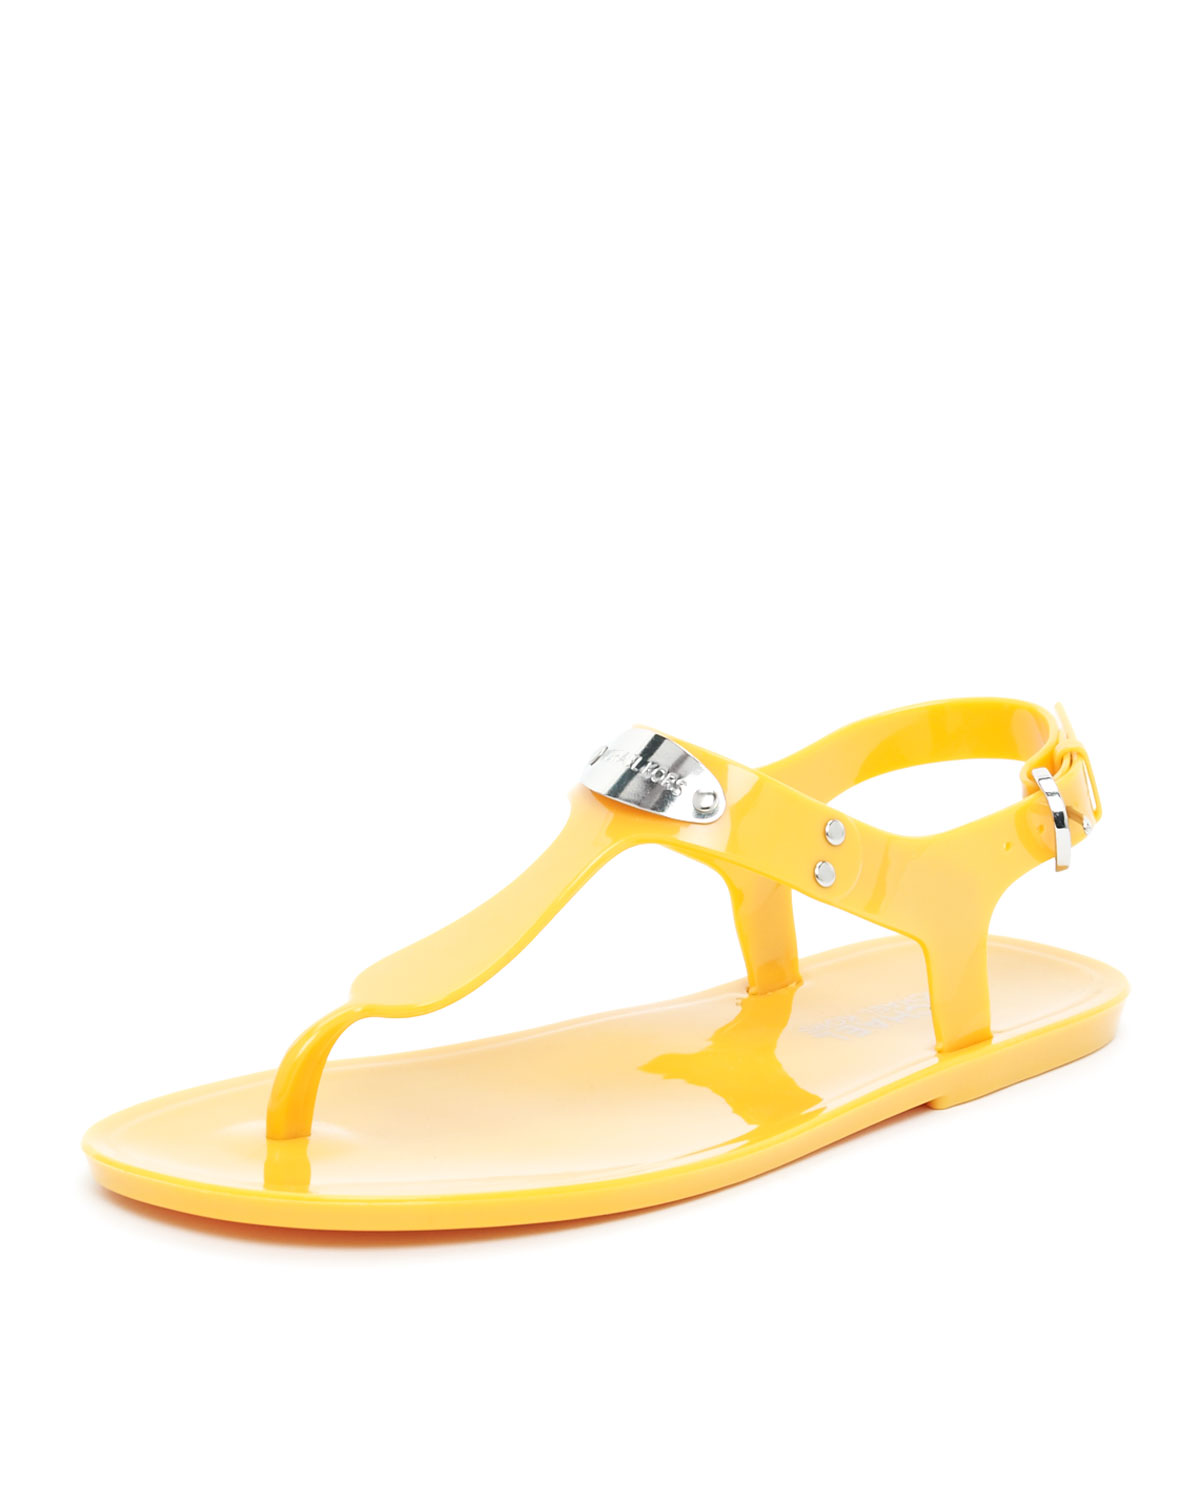 d70186f2a40 Lyst - Michael Kors Logo Plate Jelly Sandal in Orange